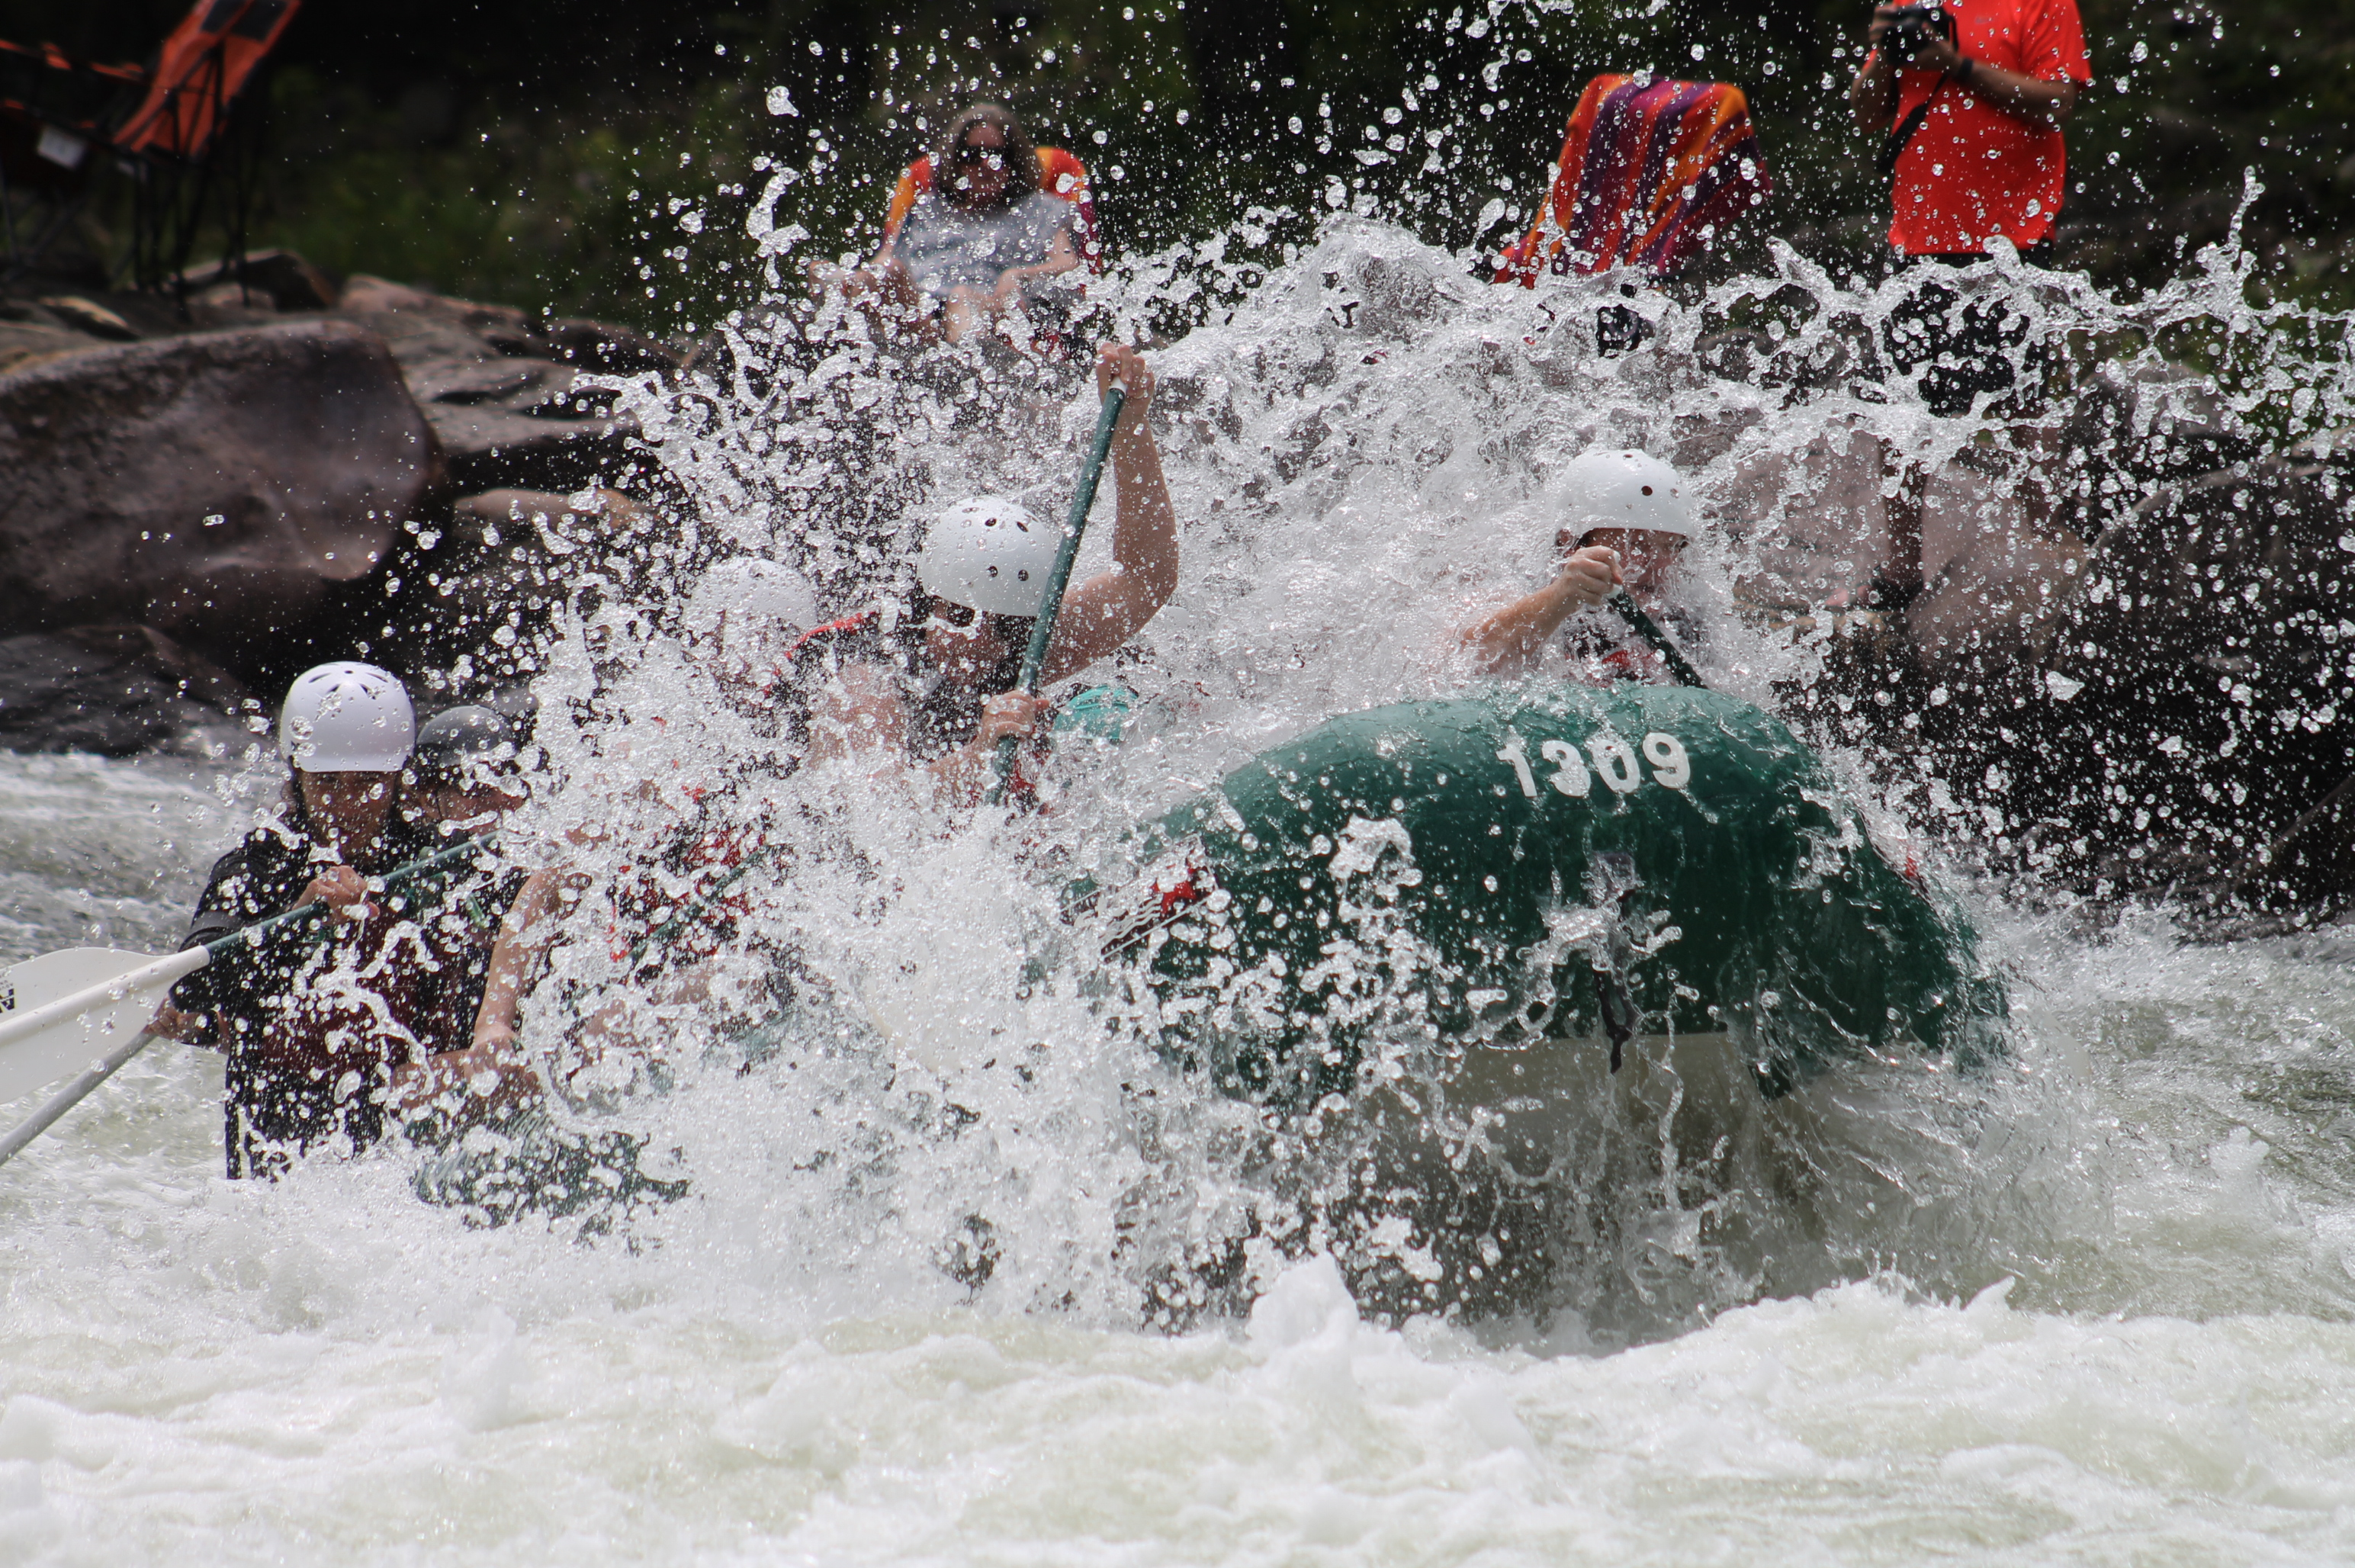 2017 Full Ocoee River Adventure for 2- BOGO Free